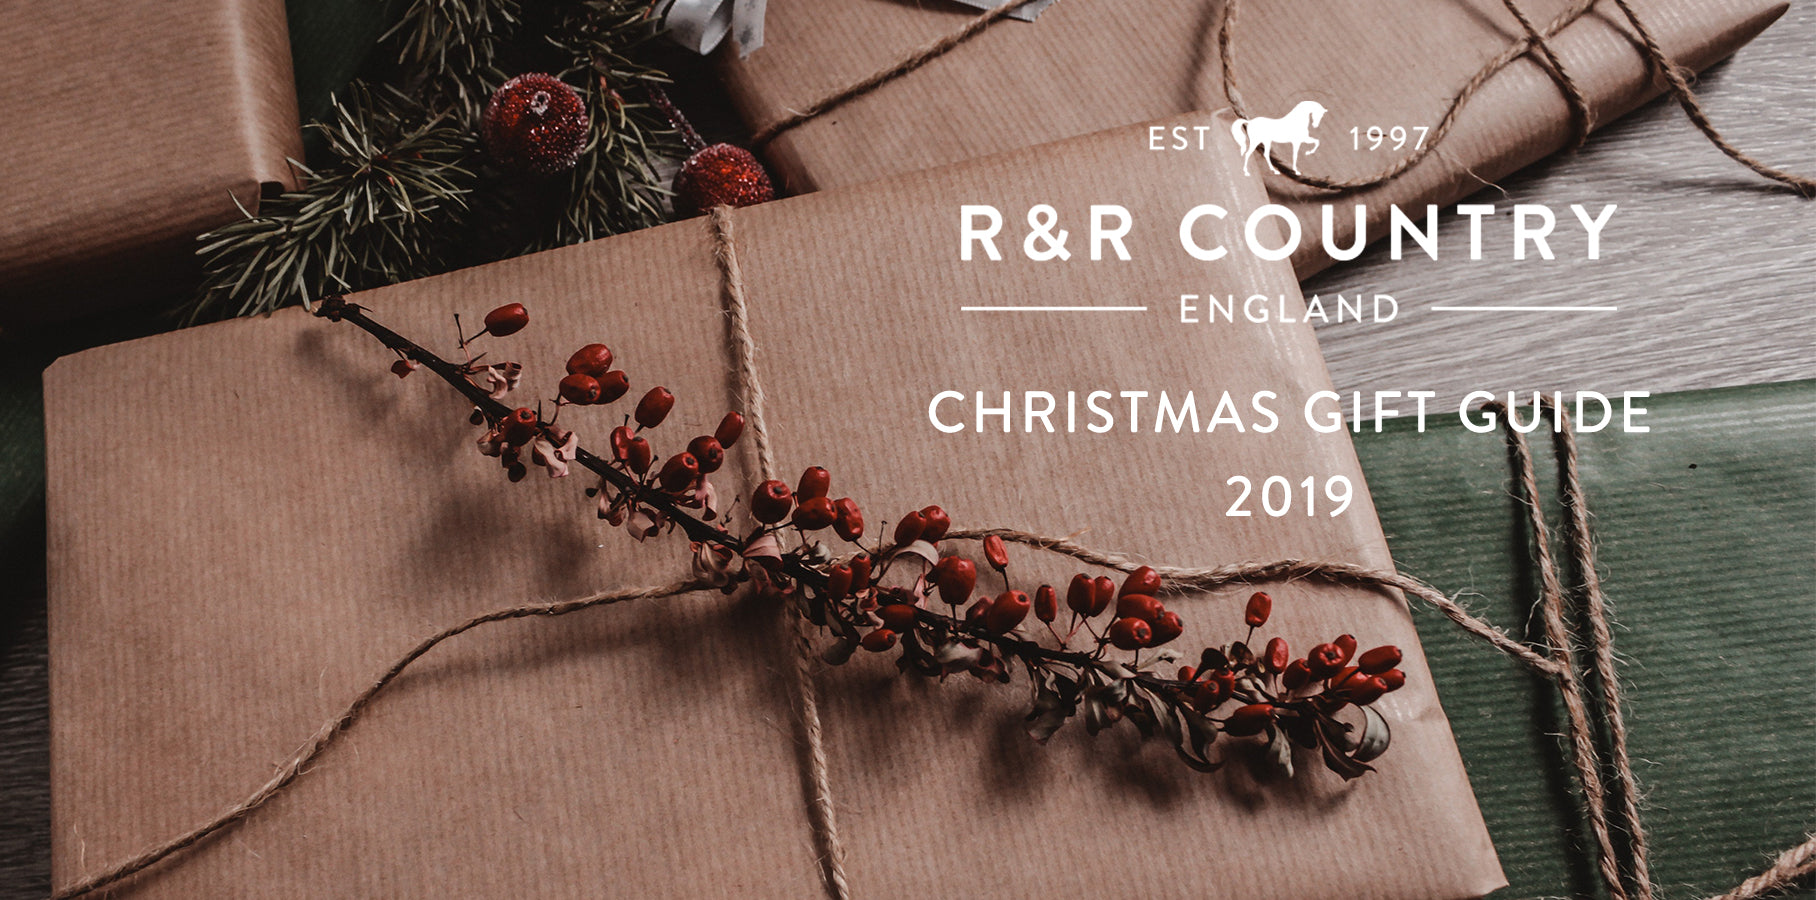 R&R Country Christmas gift guide 2019 Christmas gift inspiration 2019 Best Christmas gifts 2019 Christmas gifts for her 2019 Christmas gifts for him 2019 Country Christmas gifts 2019 Equestrian Christmas gifts 2019